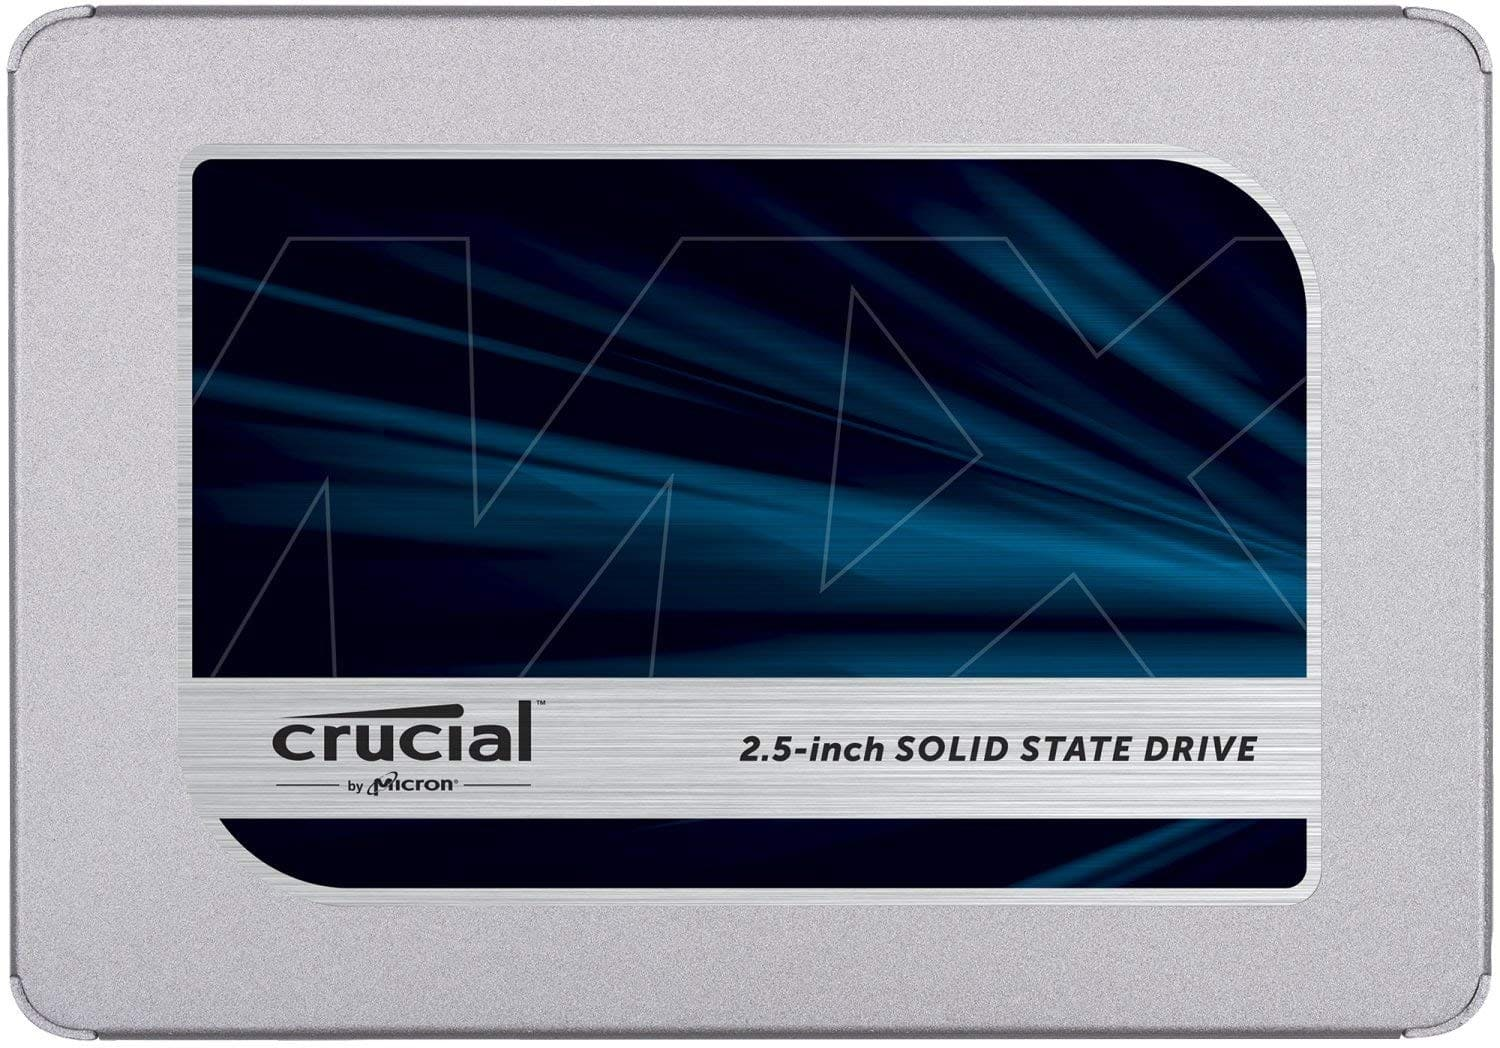 Crucial MX500 1TB 3D NAND SATA 2.5 Inch Internal SSD - CT1000MX500SSD1(Z) $99.99 - 15% off with prime card